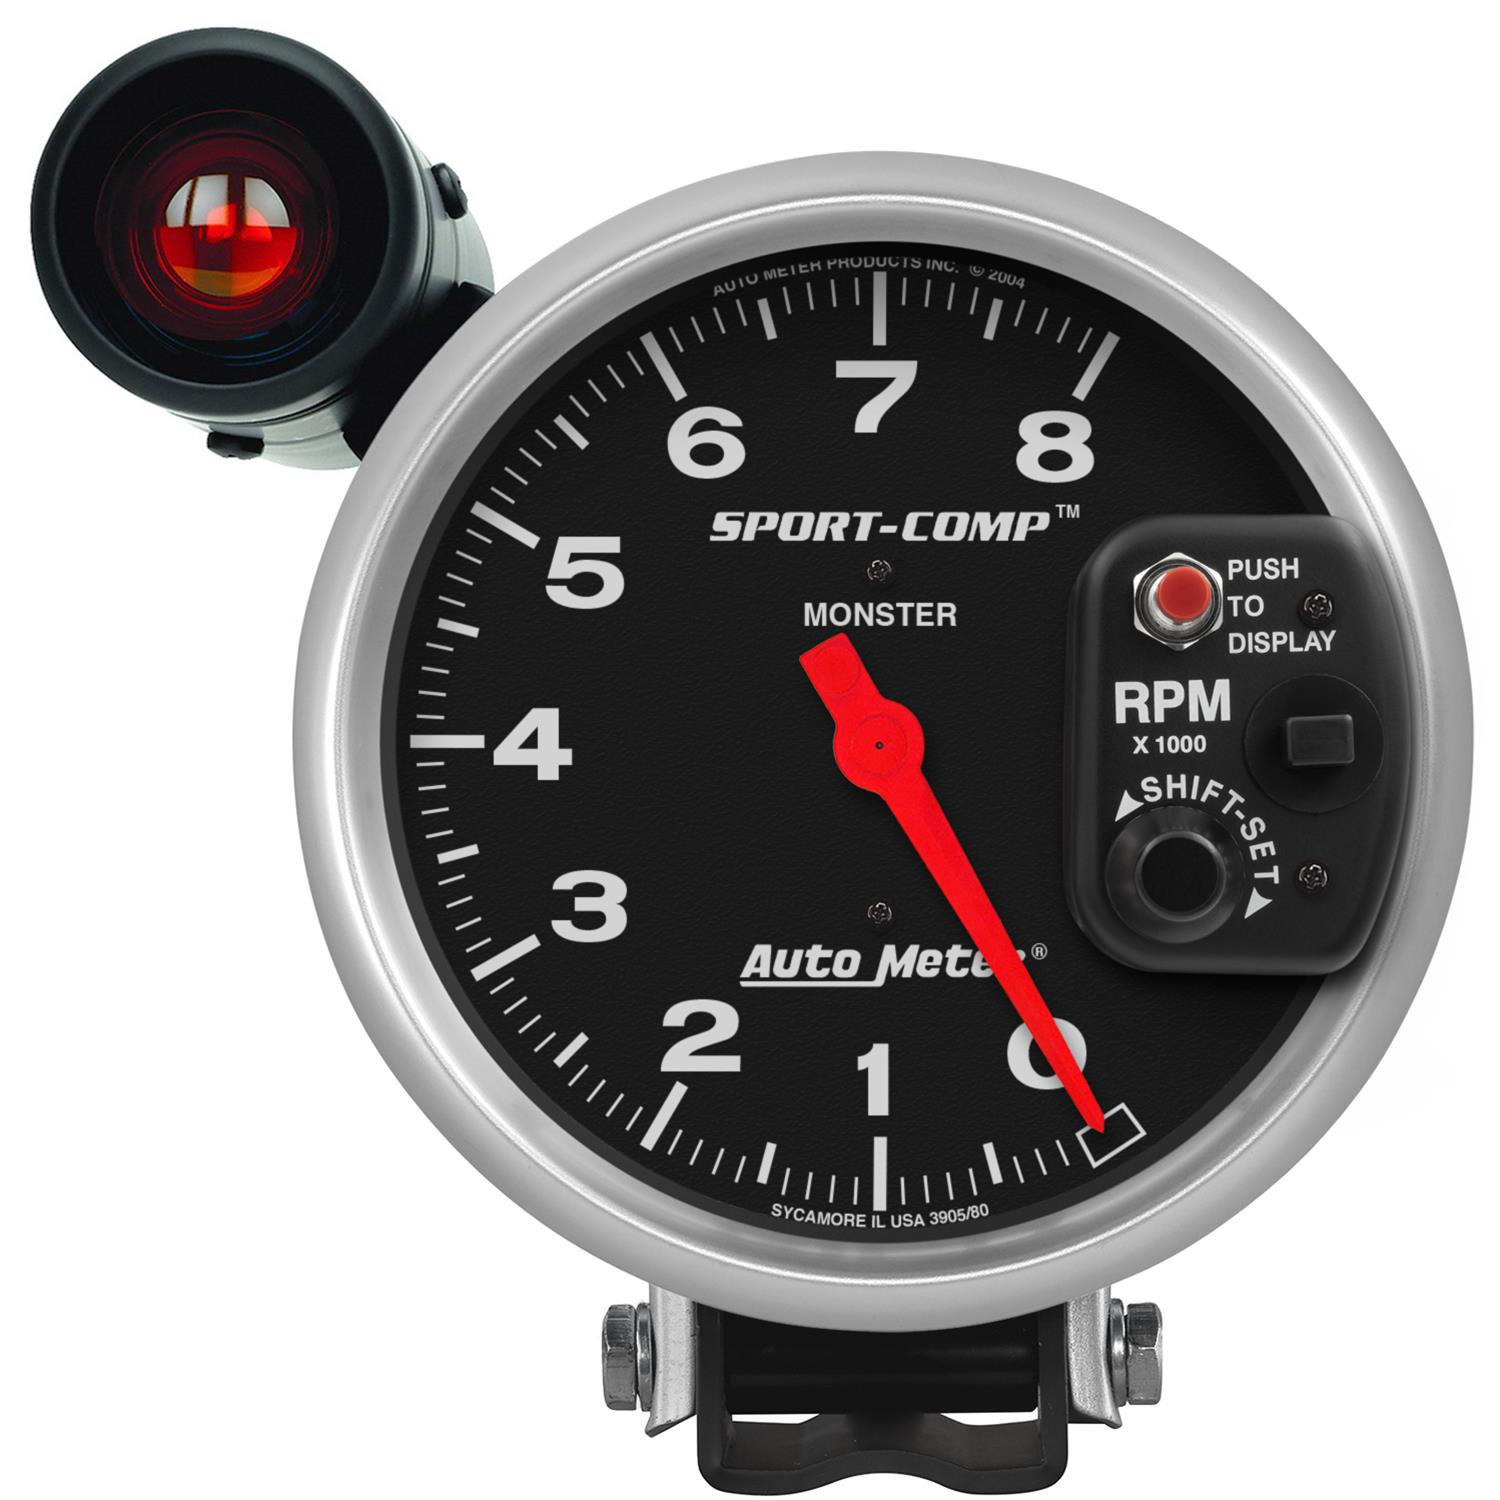 hight resolution of autometer sport comp monster shift lite tachometers 3905 free shipping on orders over 99 at summit racing